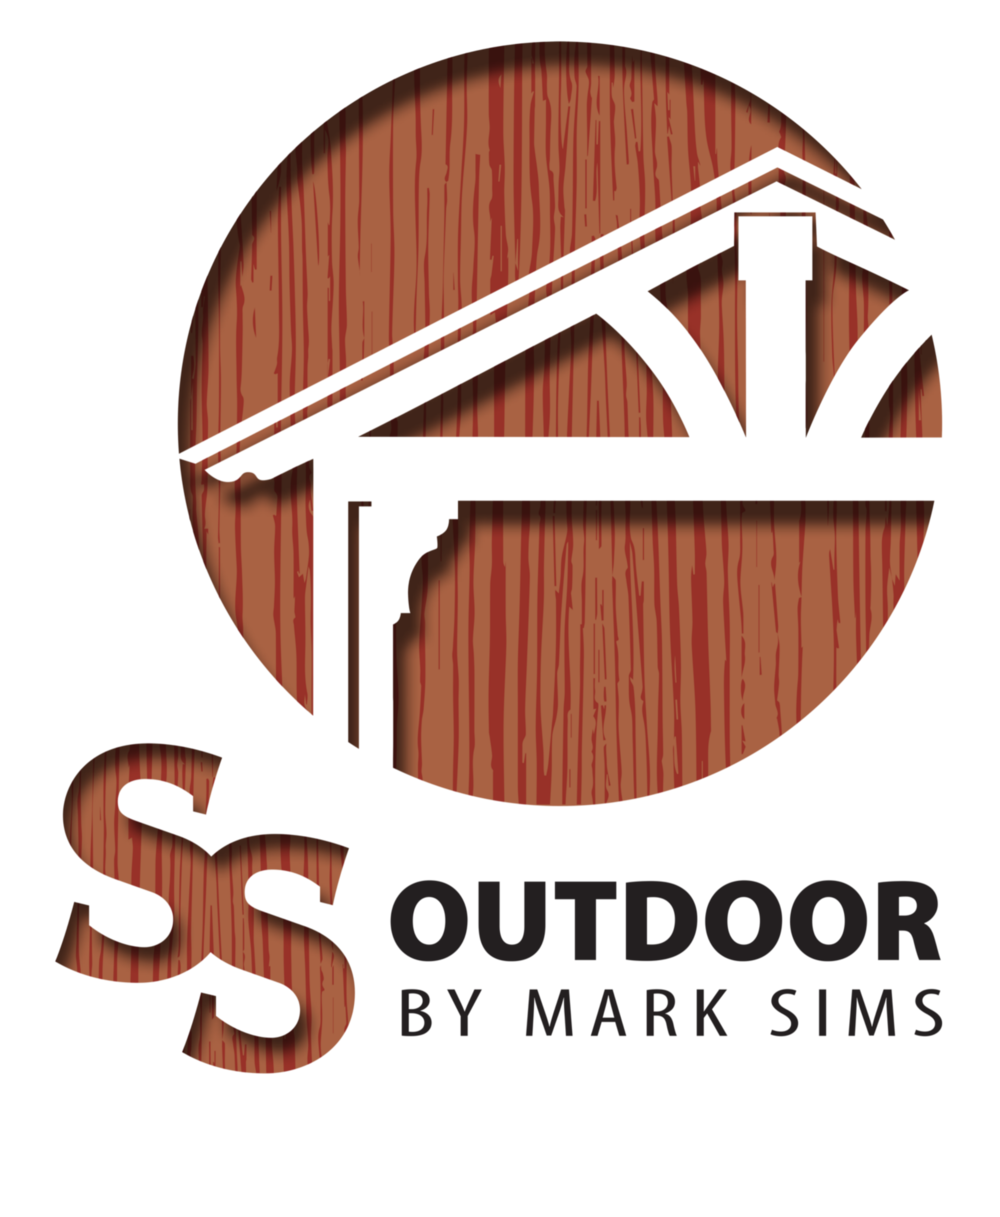 SS Outdoor by Mark Sims